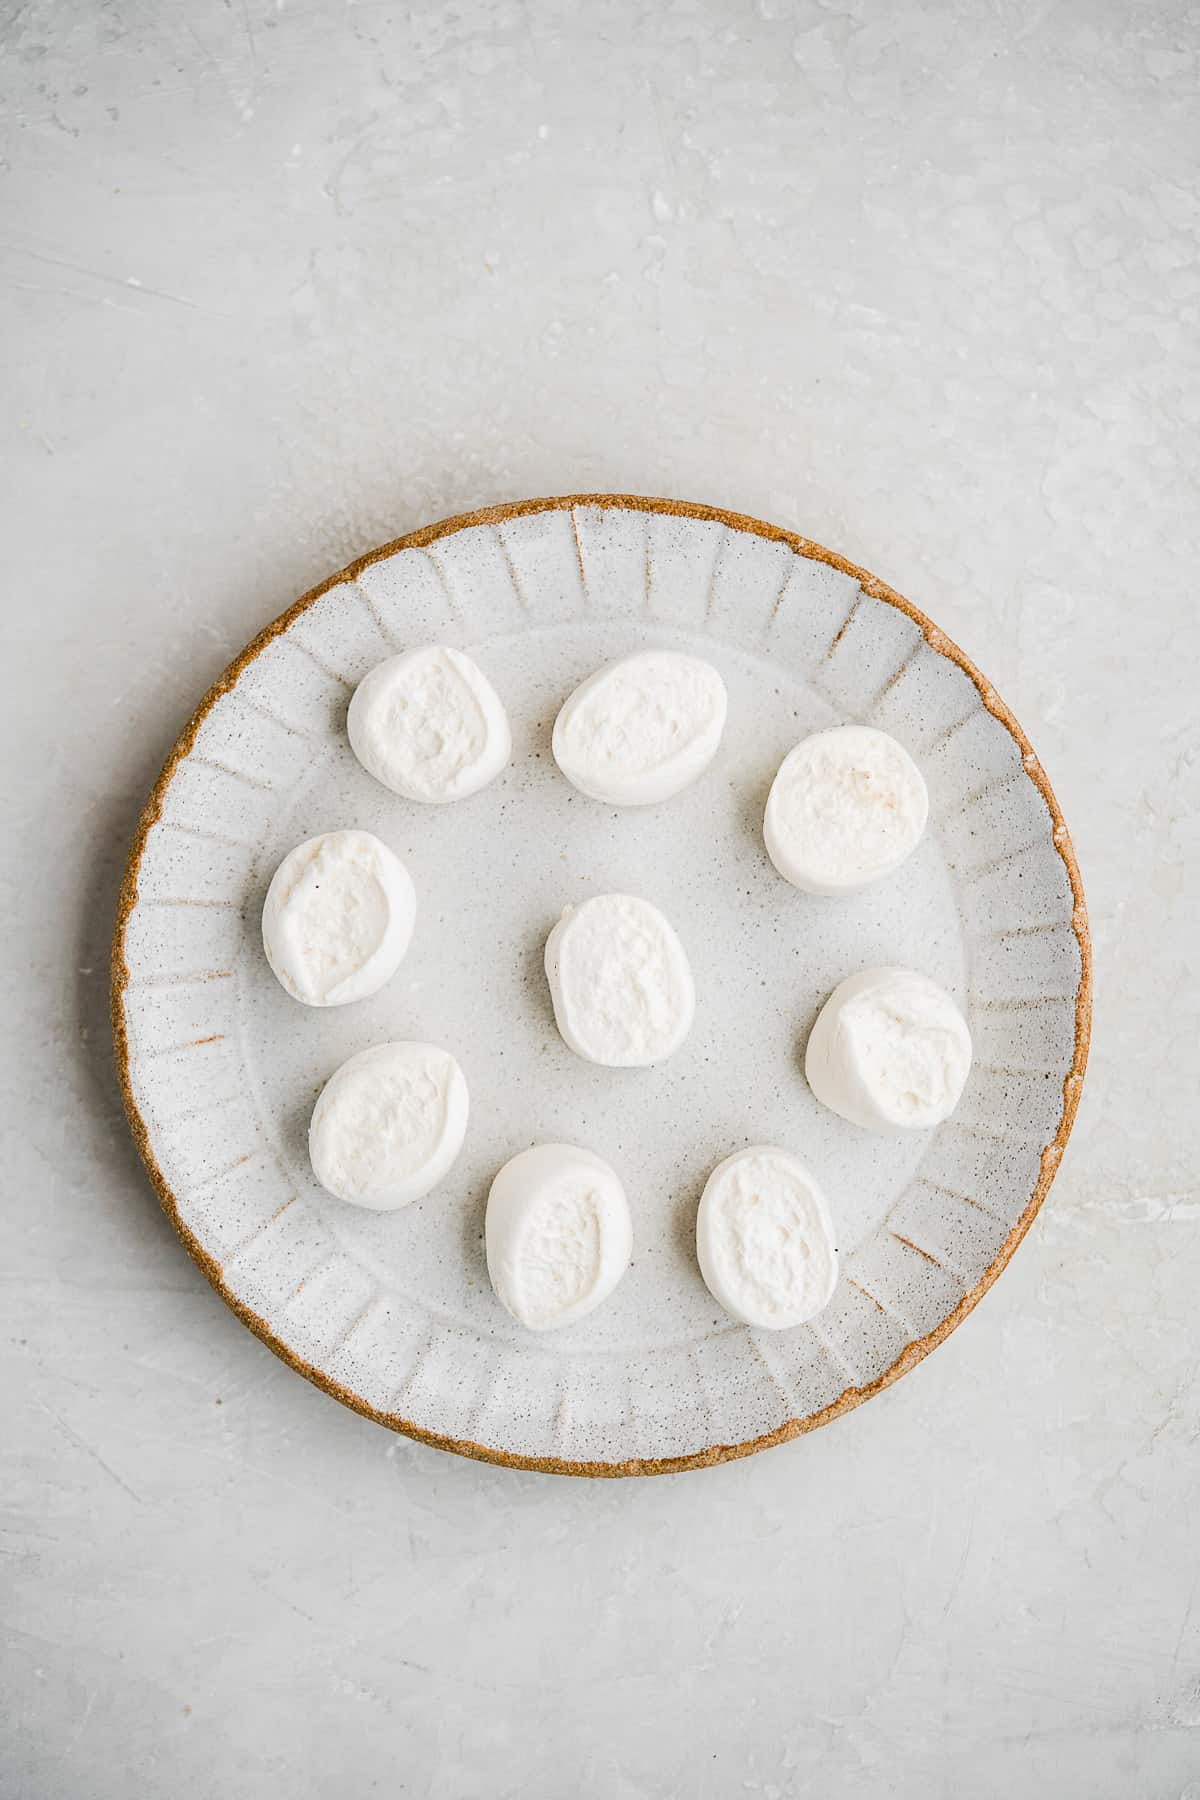 Marshmallows spread out on a plate on a white surface.